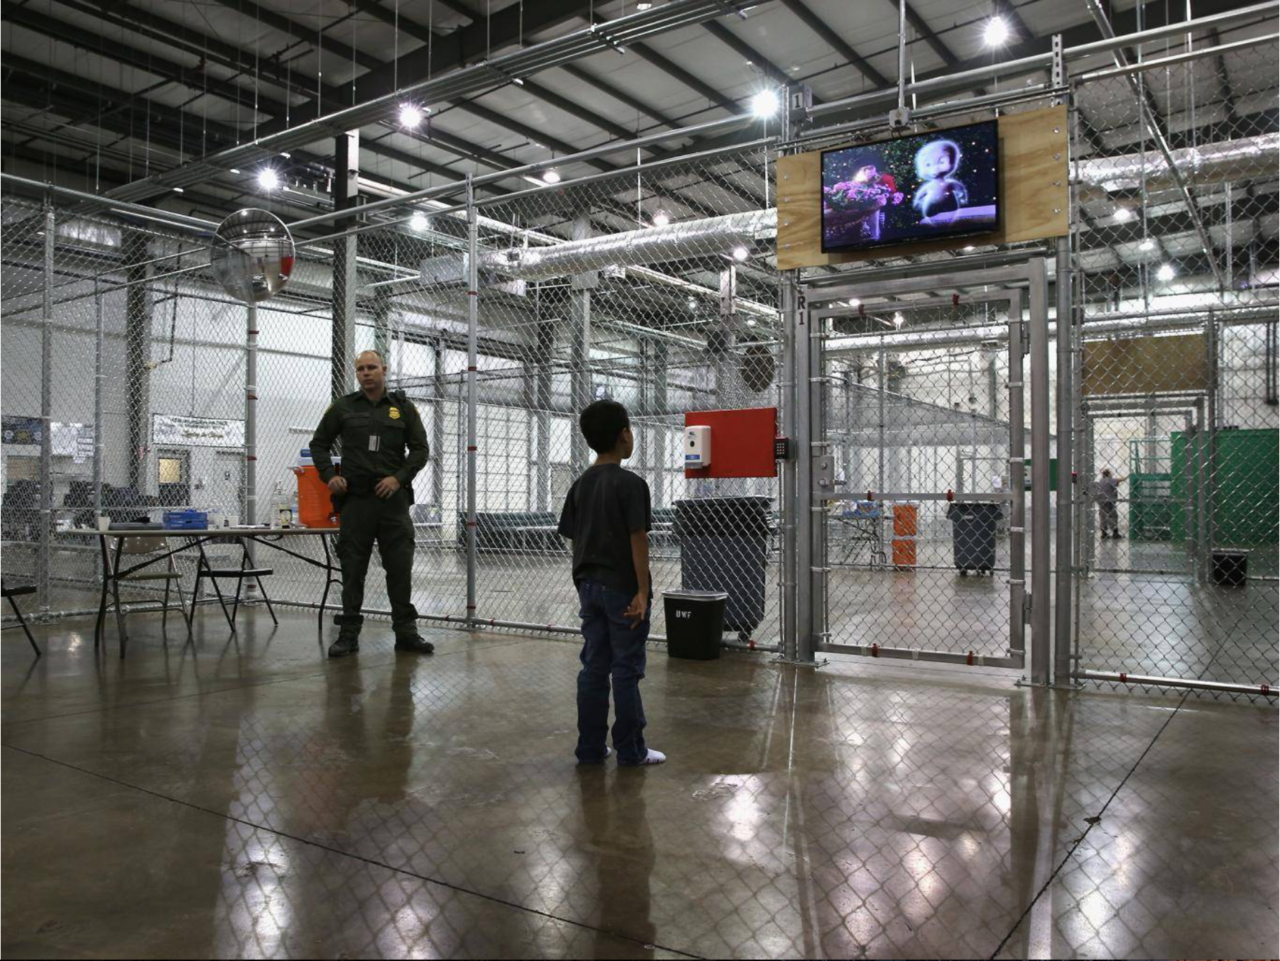 Immigrant families seeking US refuge are being prosecuted and their children taken away